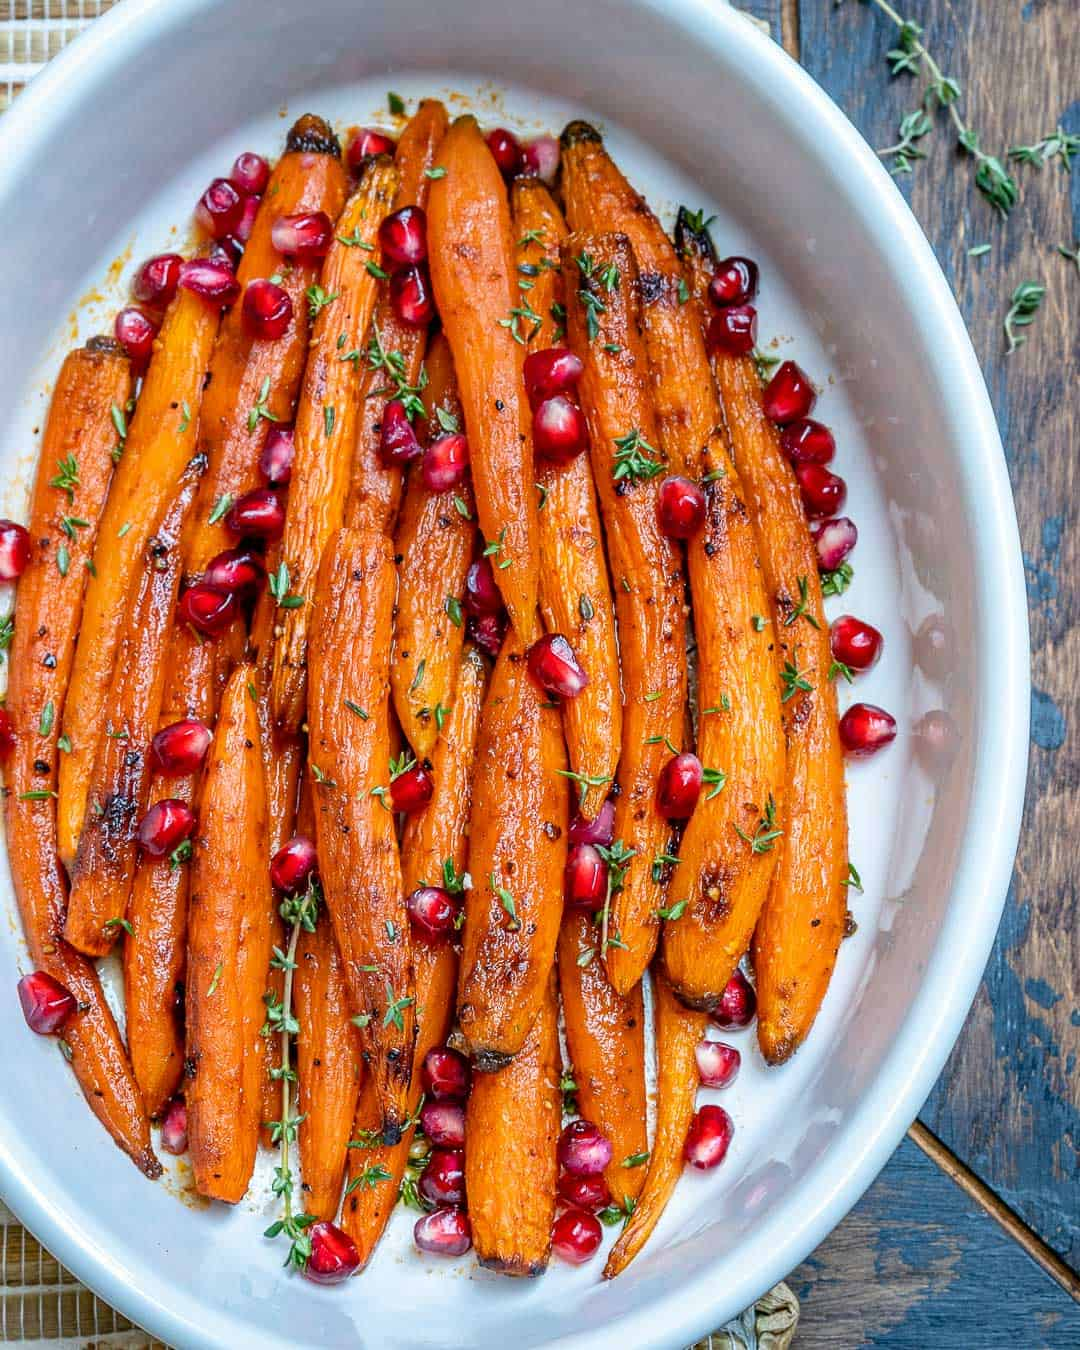 Maple Glazed Carrots in a dish